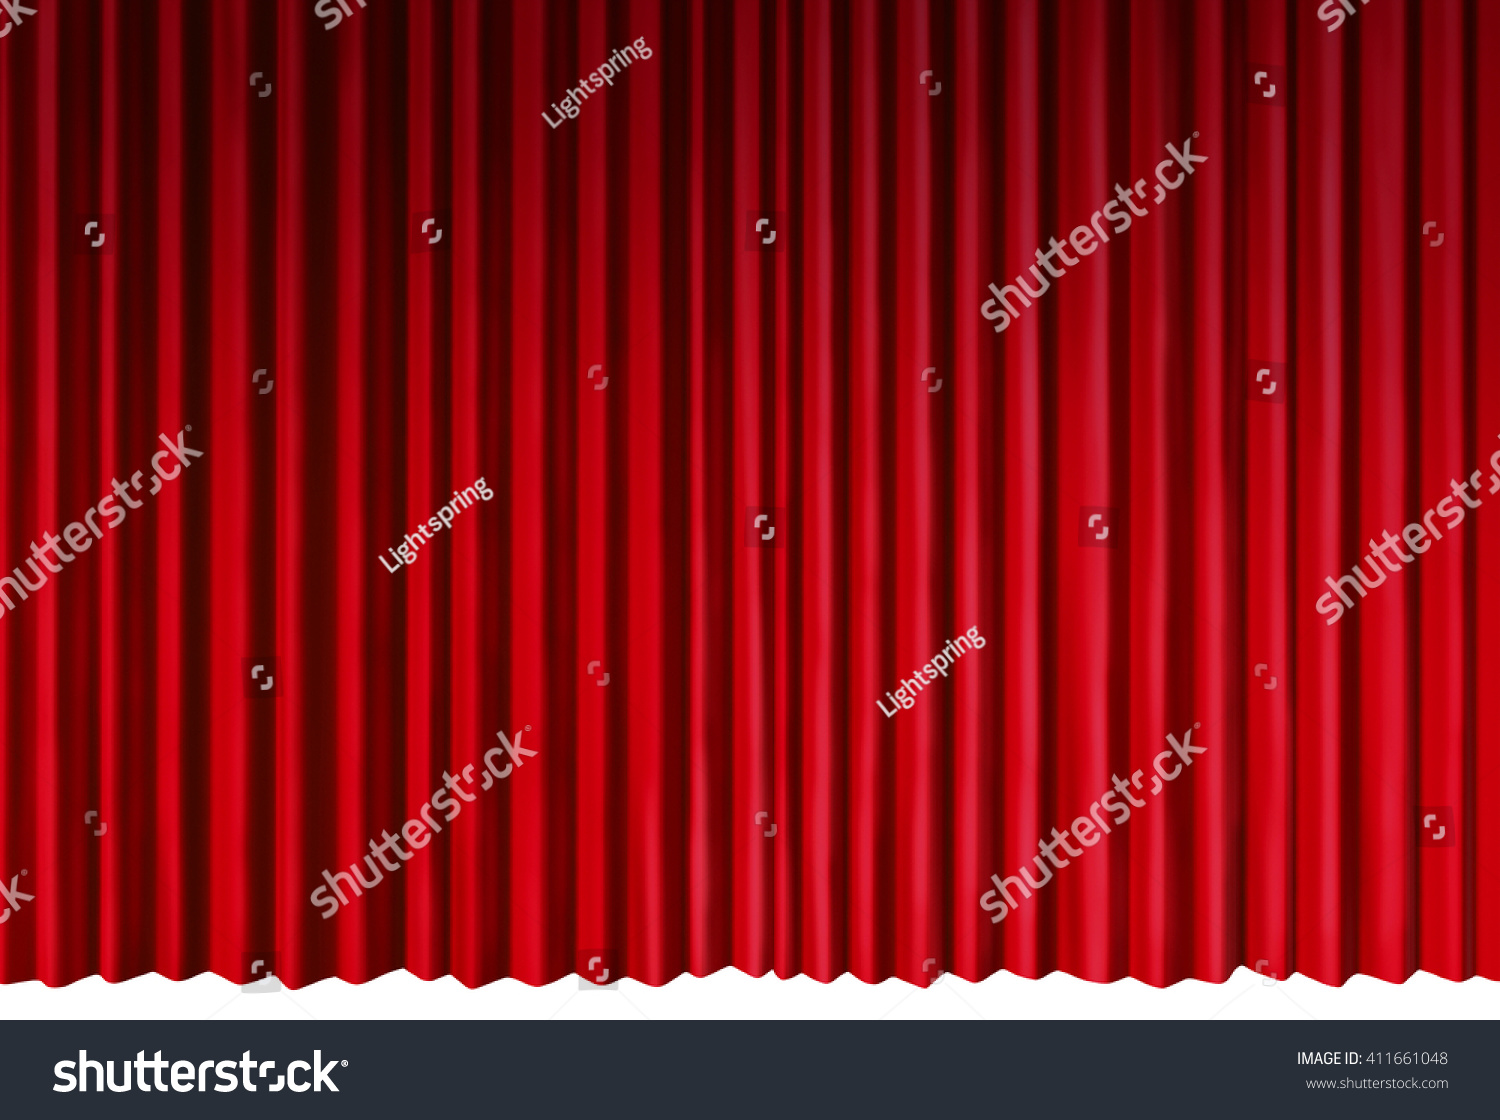 curtains object as red velvet drapes theatrical stage isolated on a white background as